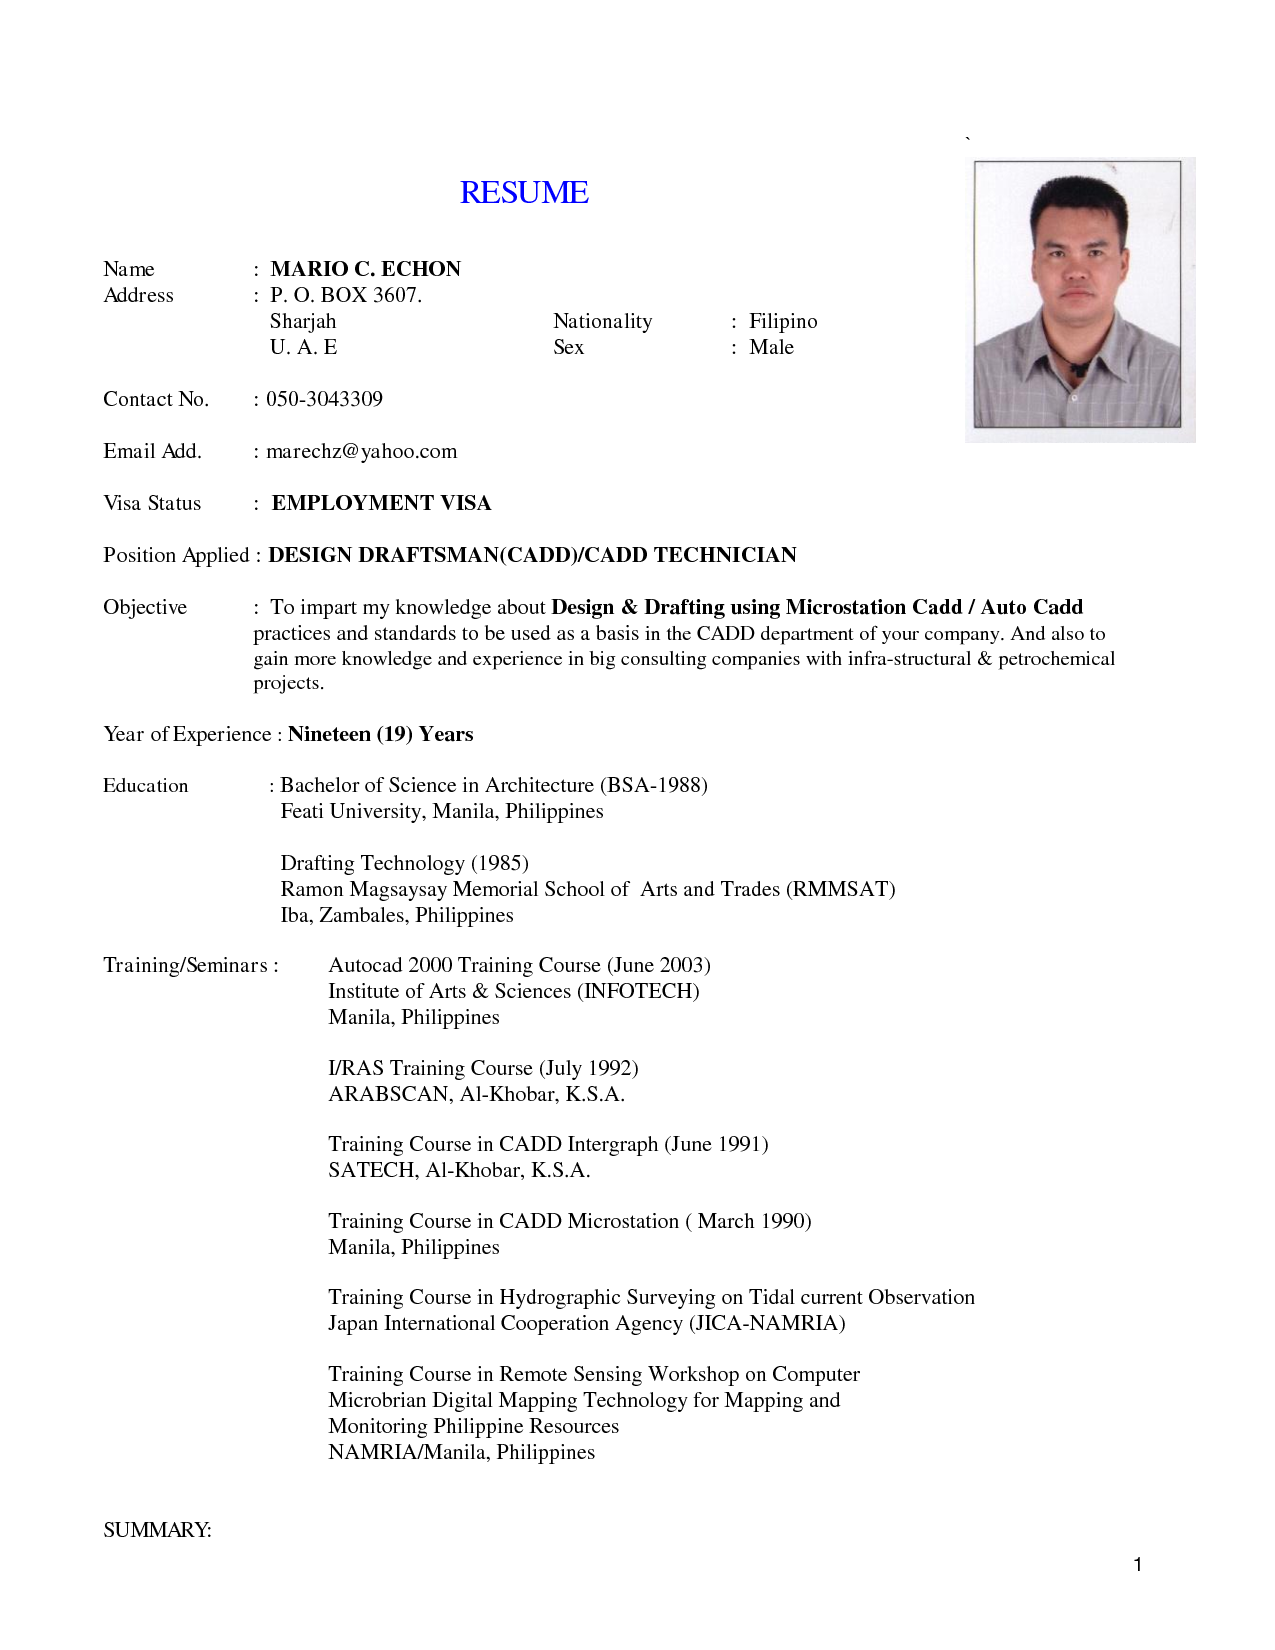 Implemented On The Job Application Technician Resume Sample Resume  Technical Resume Samples